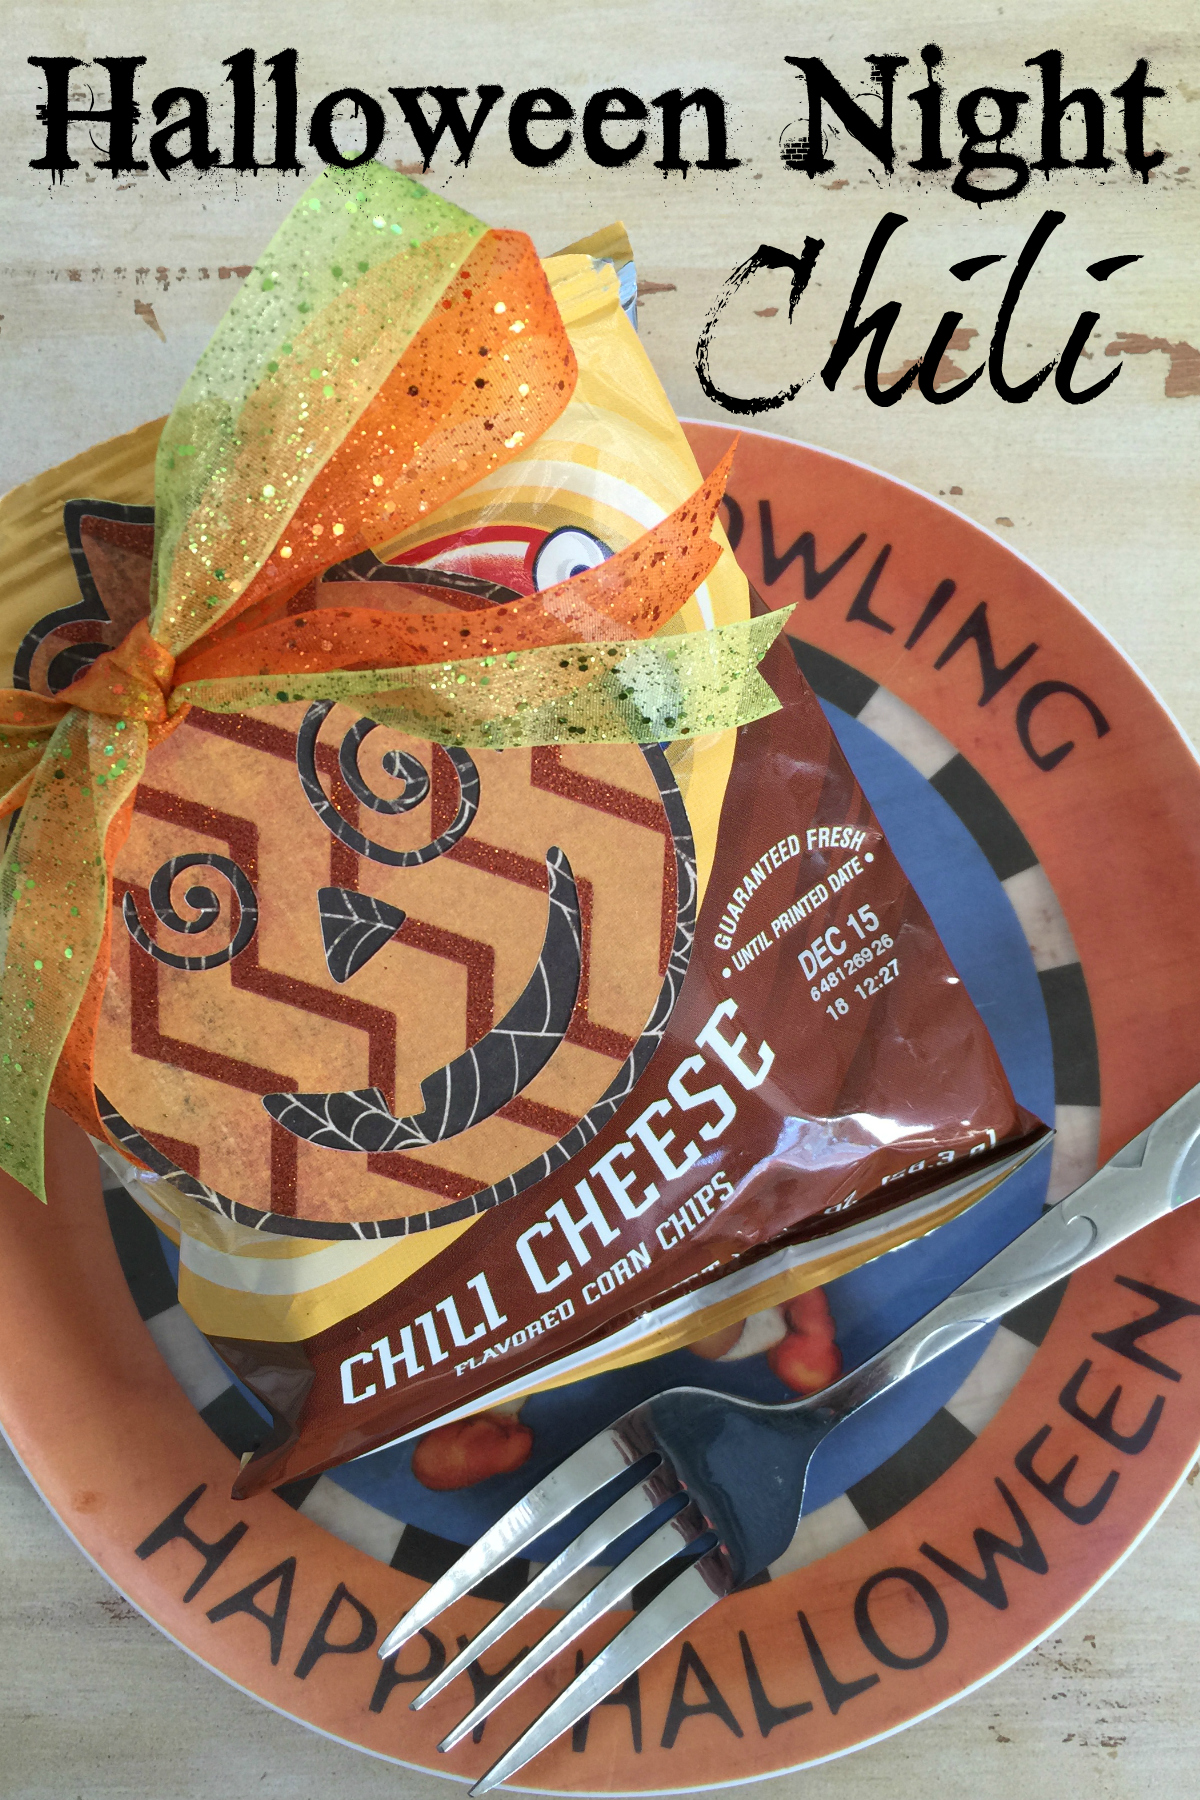 Serve up this fun Halloween Chili to keep your trick-or-treaters warm and happy! A quick, easy, and fun recipe.